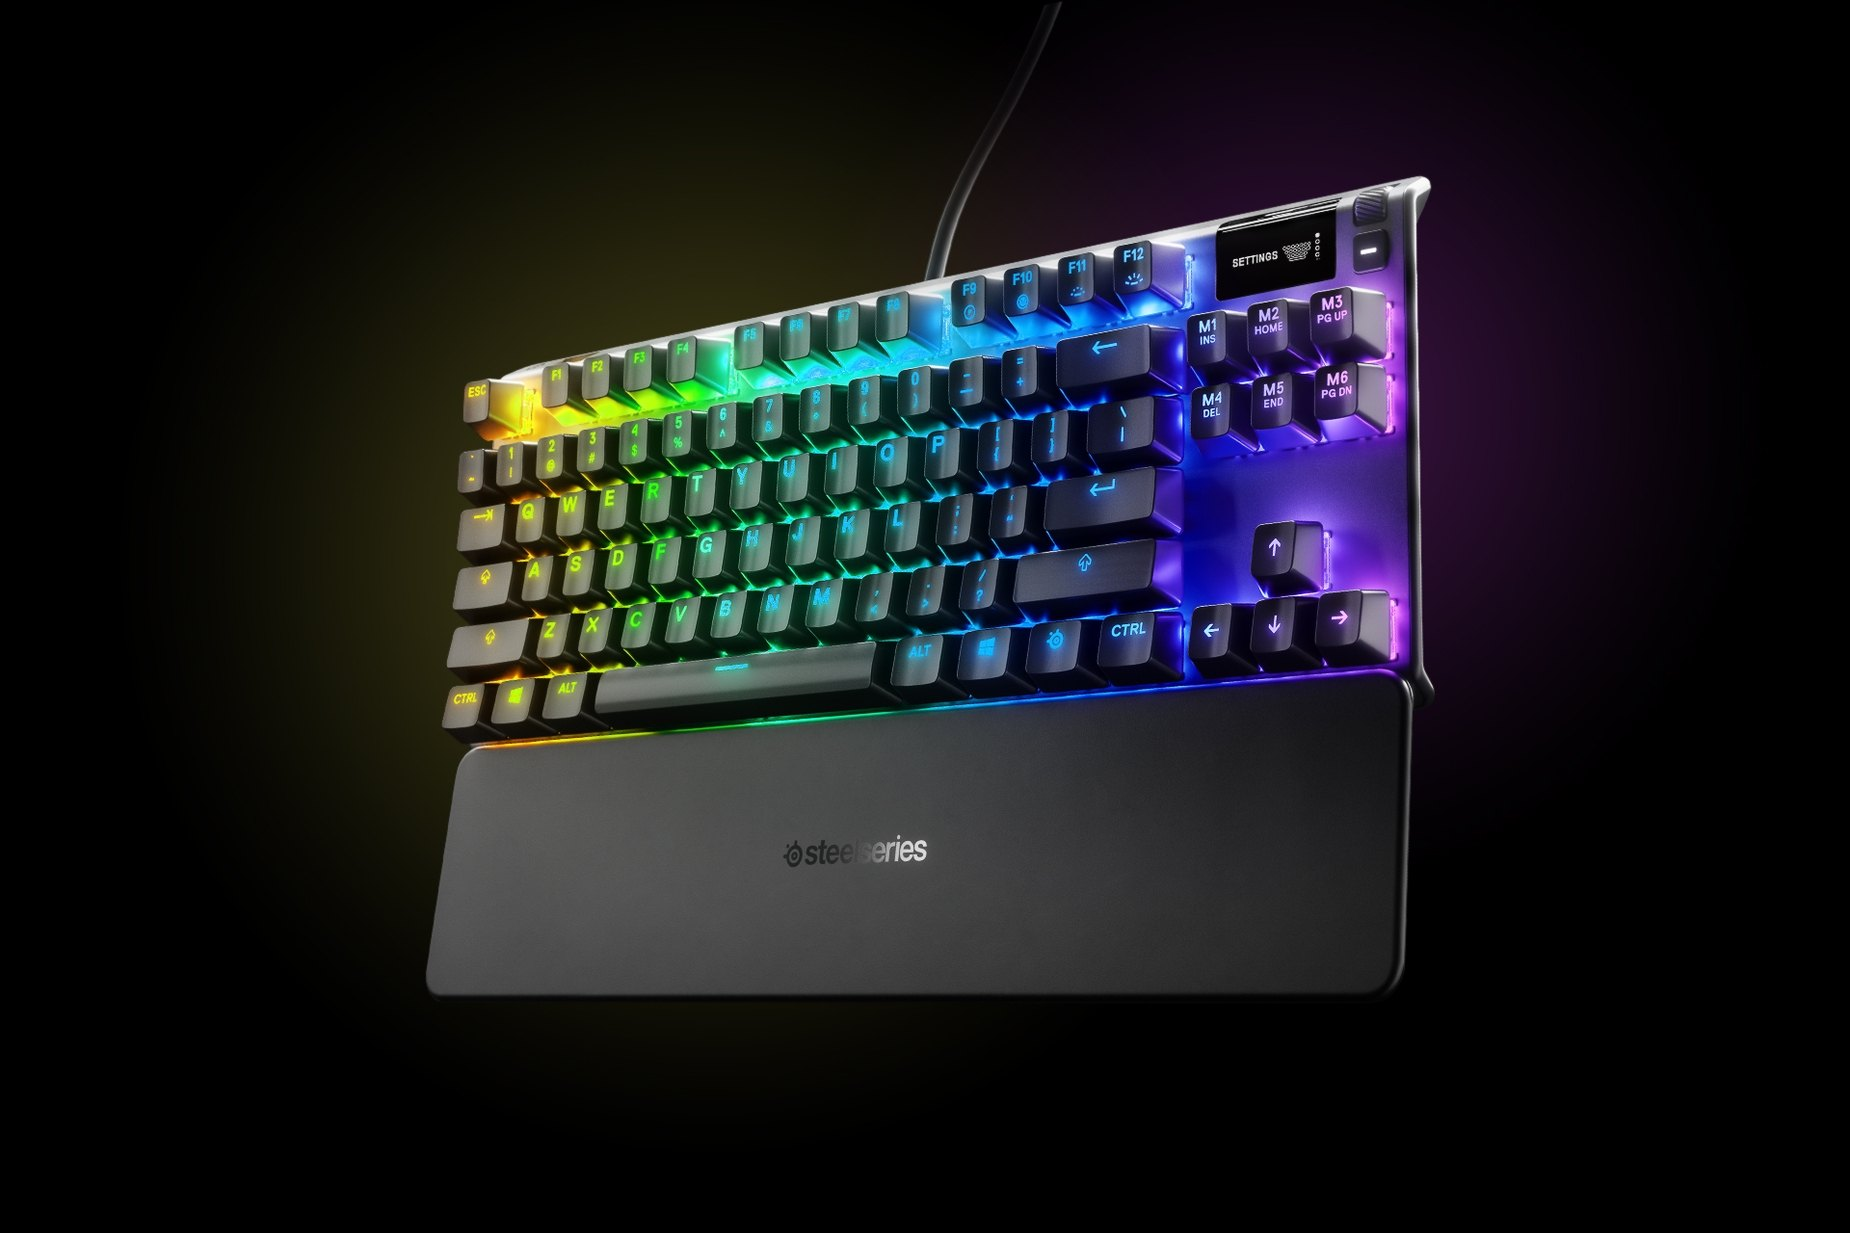 英国英语-Apex 7 TKL (Blue Switch) gaming keyboard with the illumination lit up on dark background, also shows the OLED screen and controls used to change settings and adjust audio